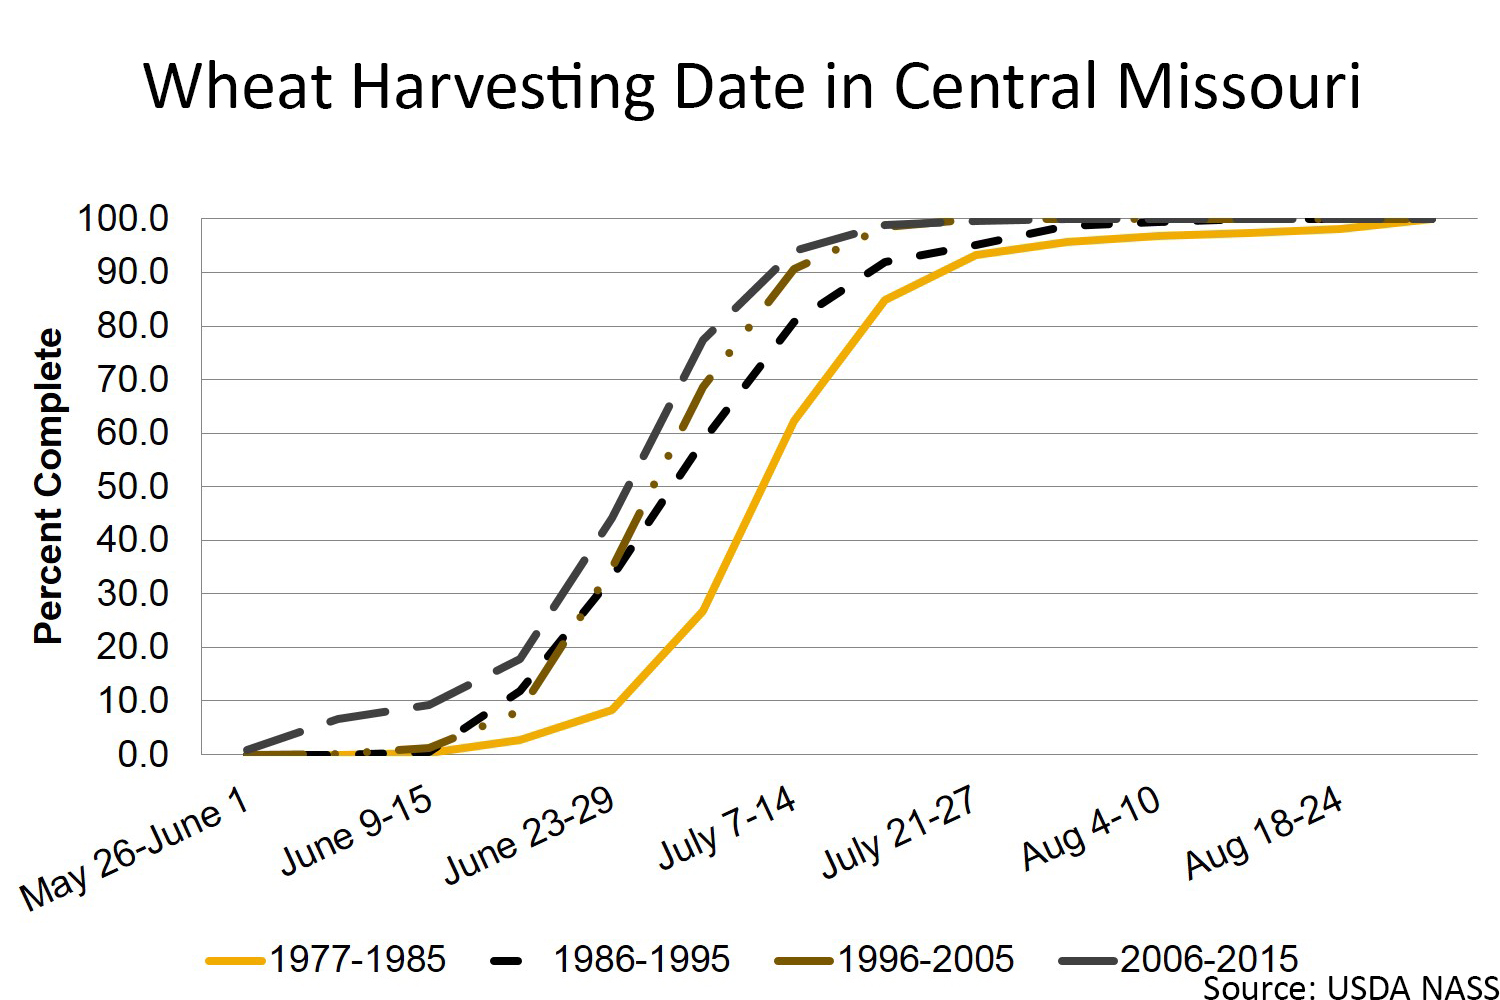 Wheat harvesting date in central Missouri chart